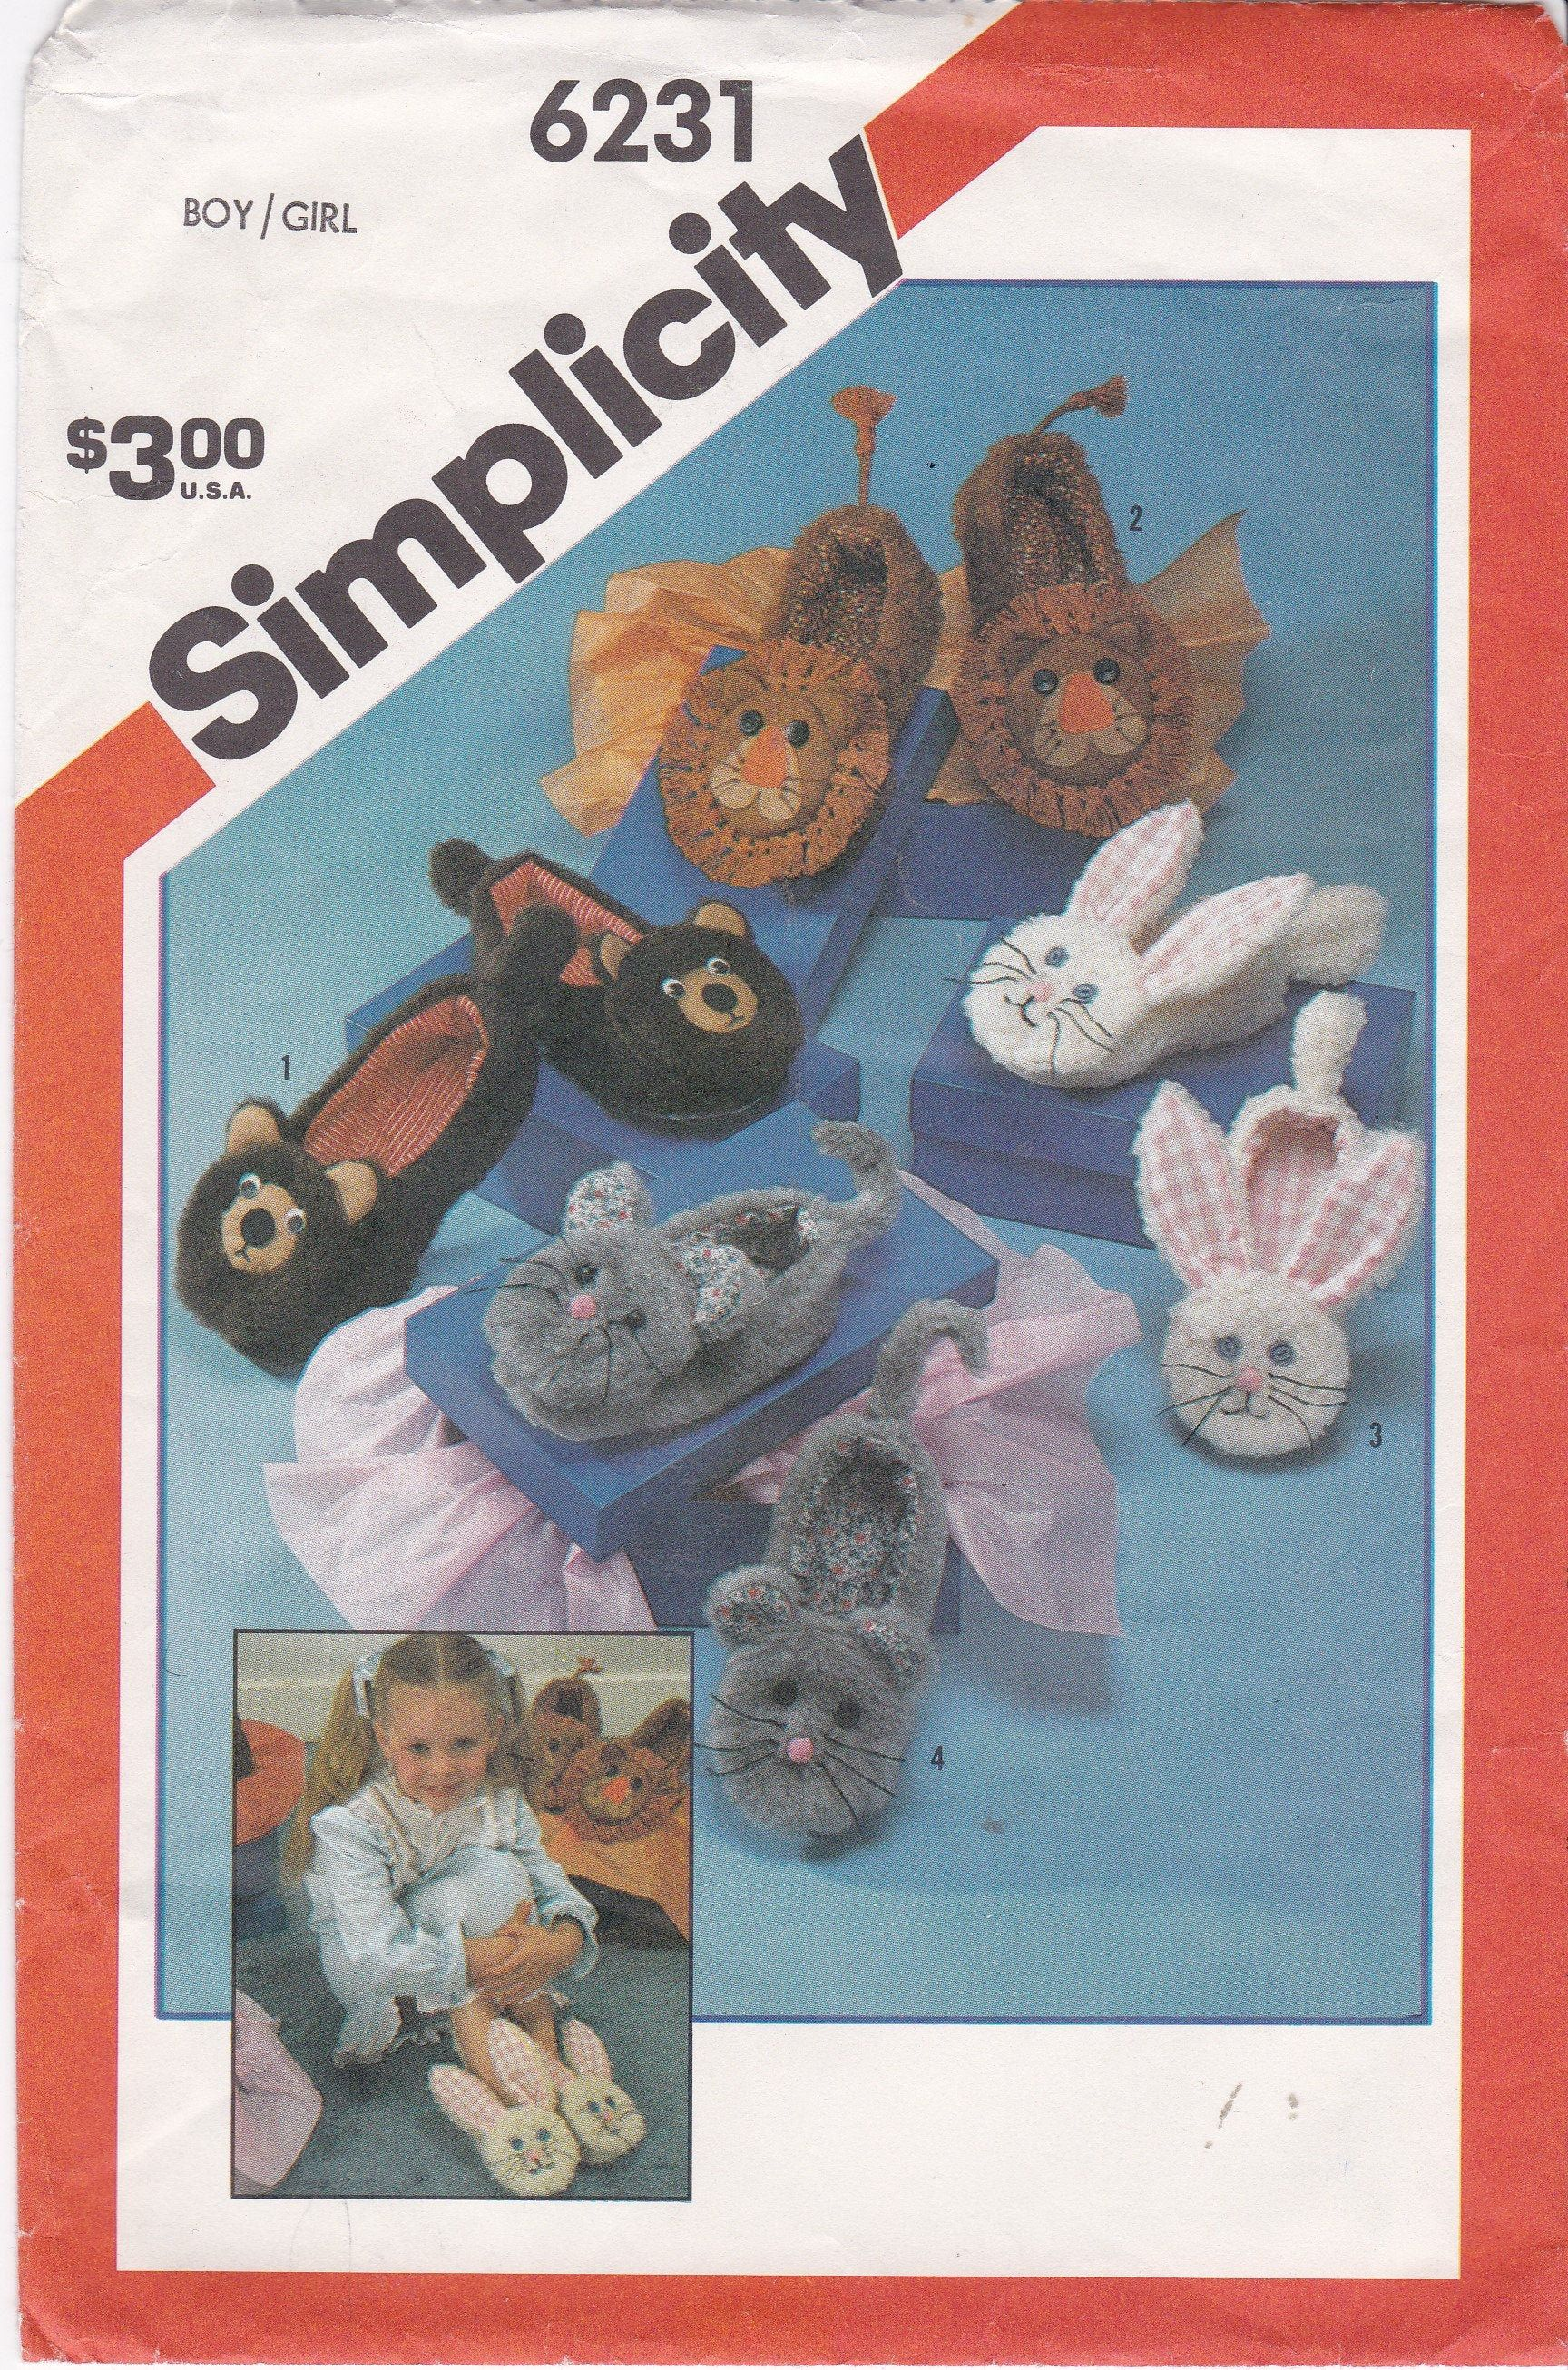 Child S Slippers Patterns Sizes Small Medium Large Cute